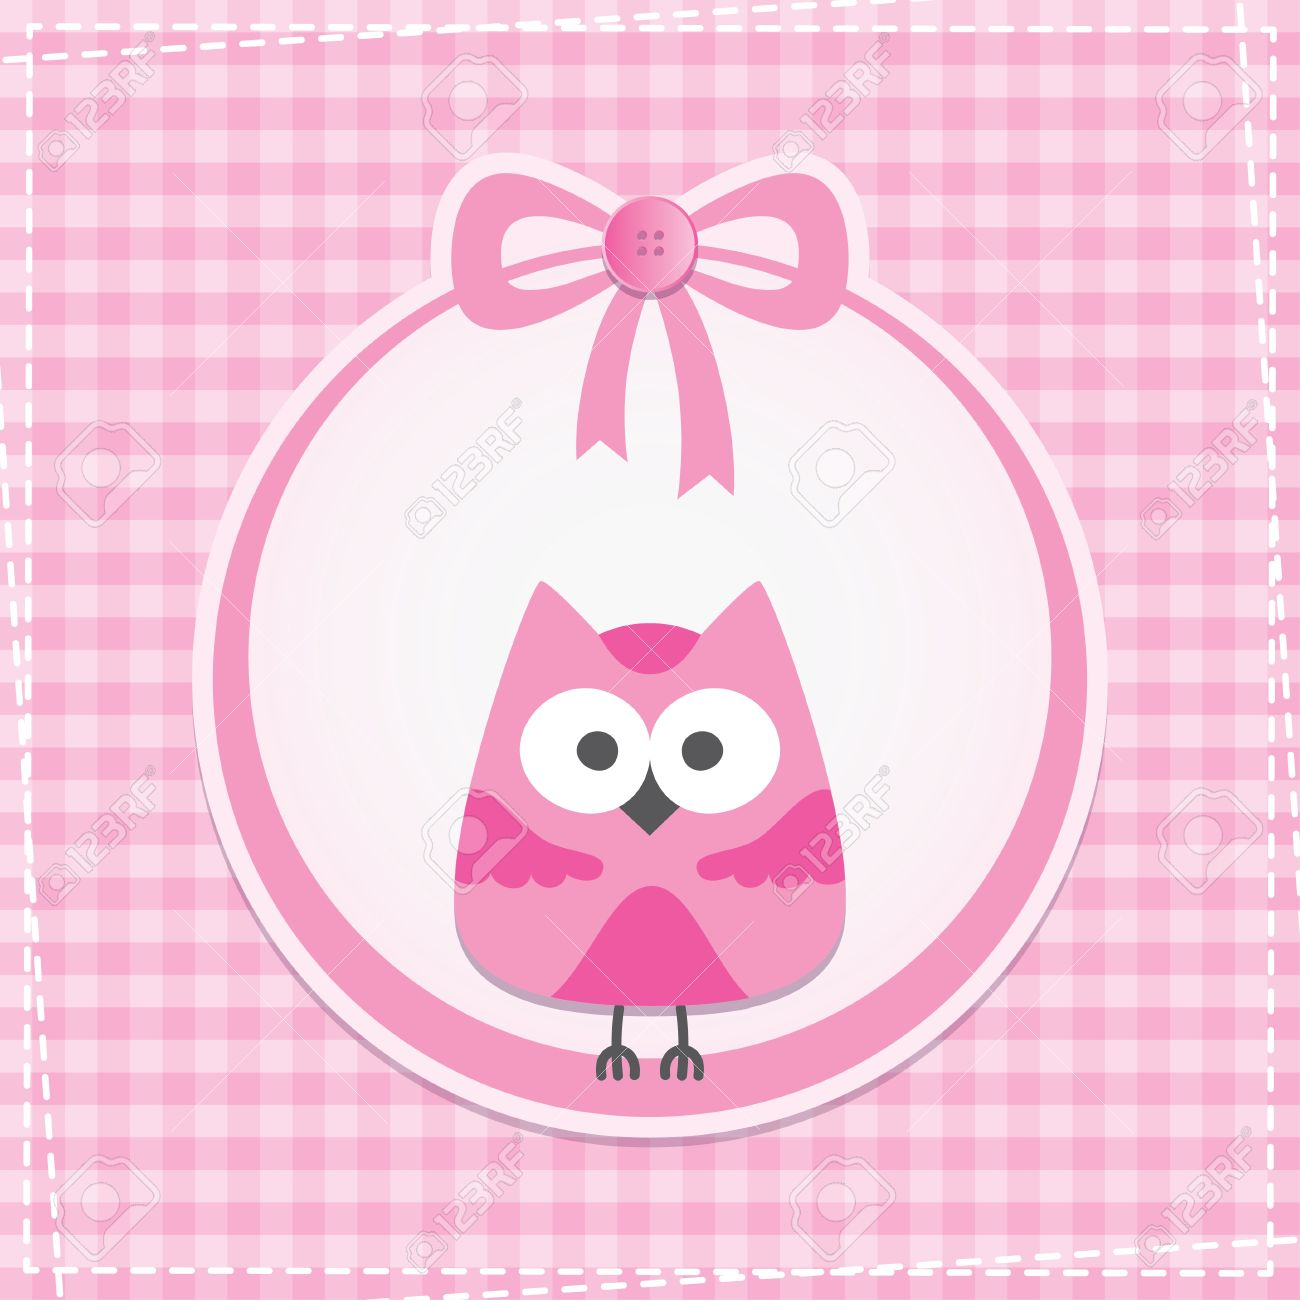 baby frame with owl, vector eps 10 Stock Vector - 14168539